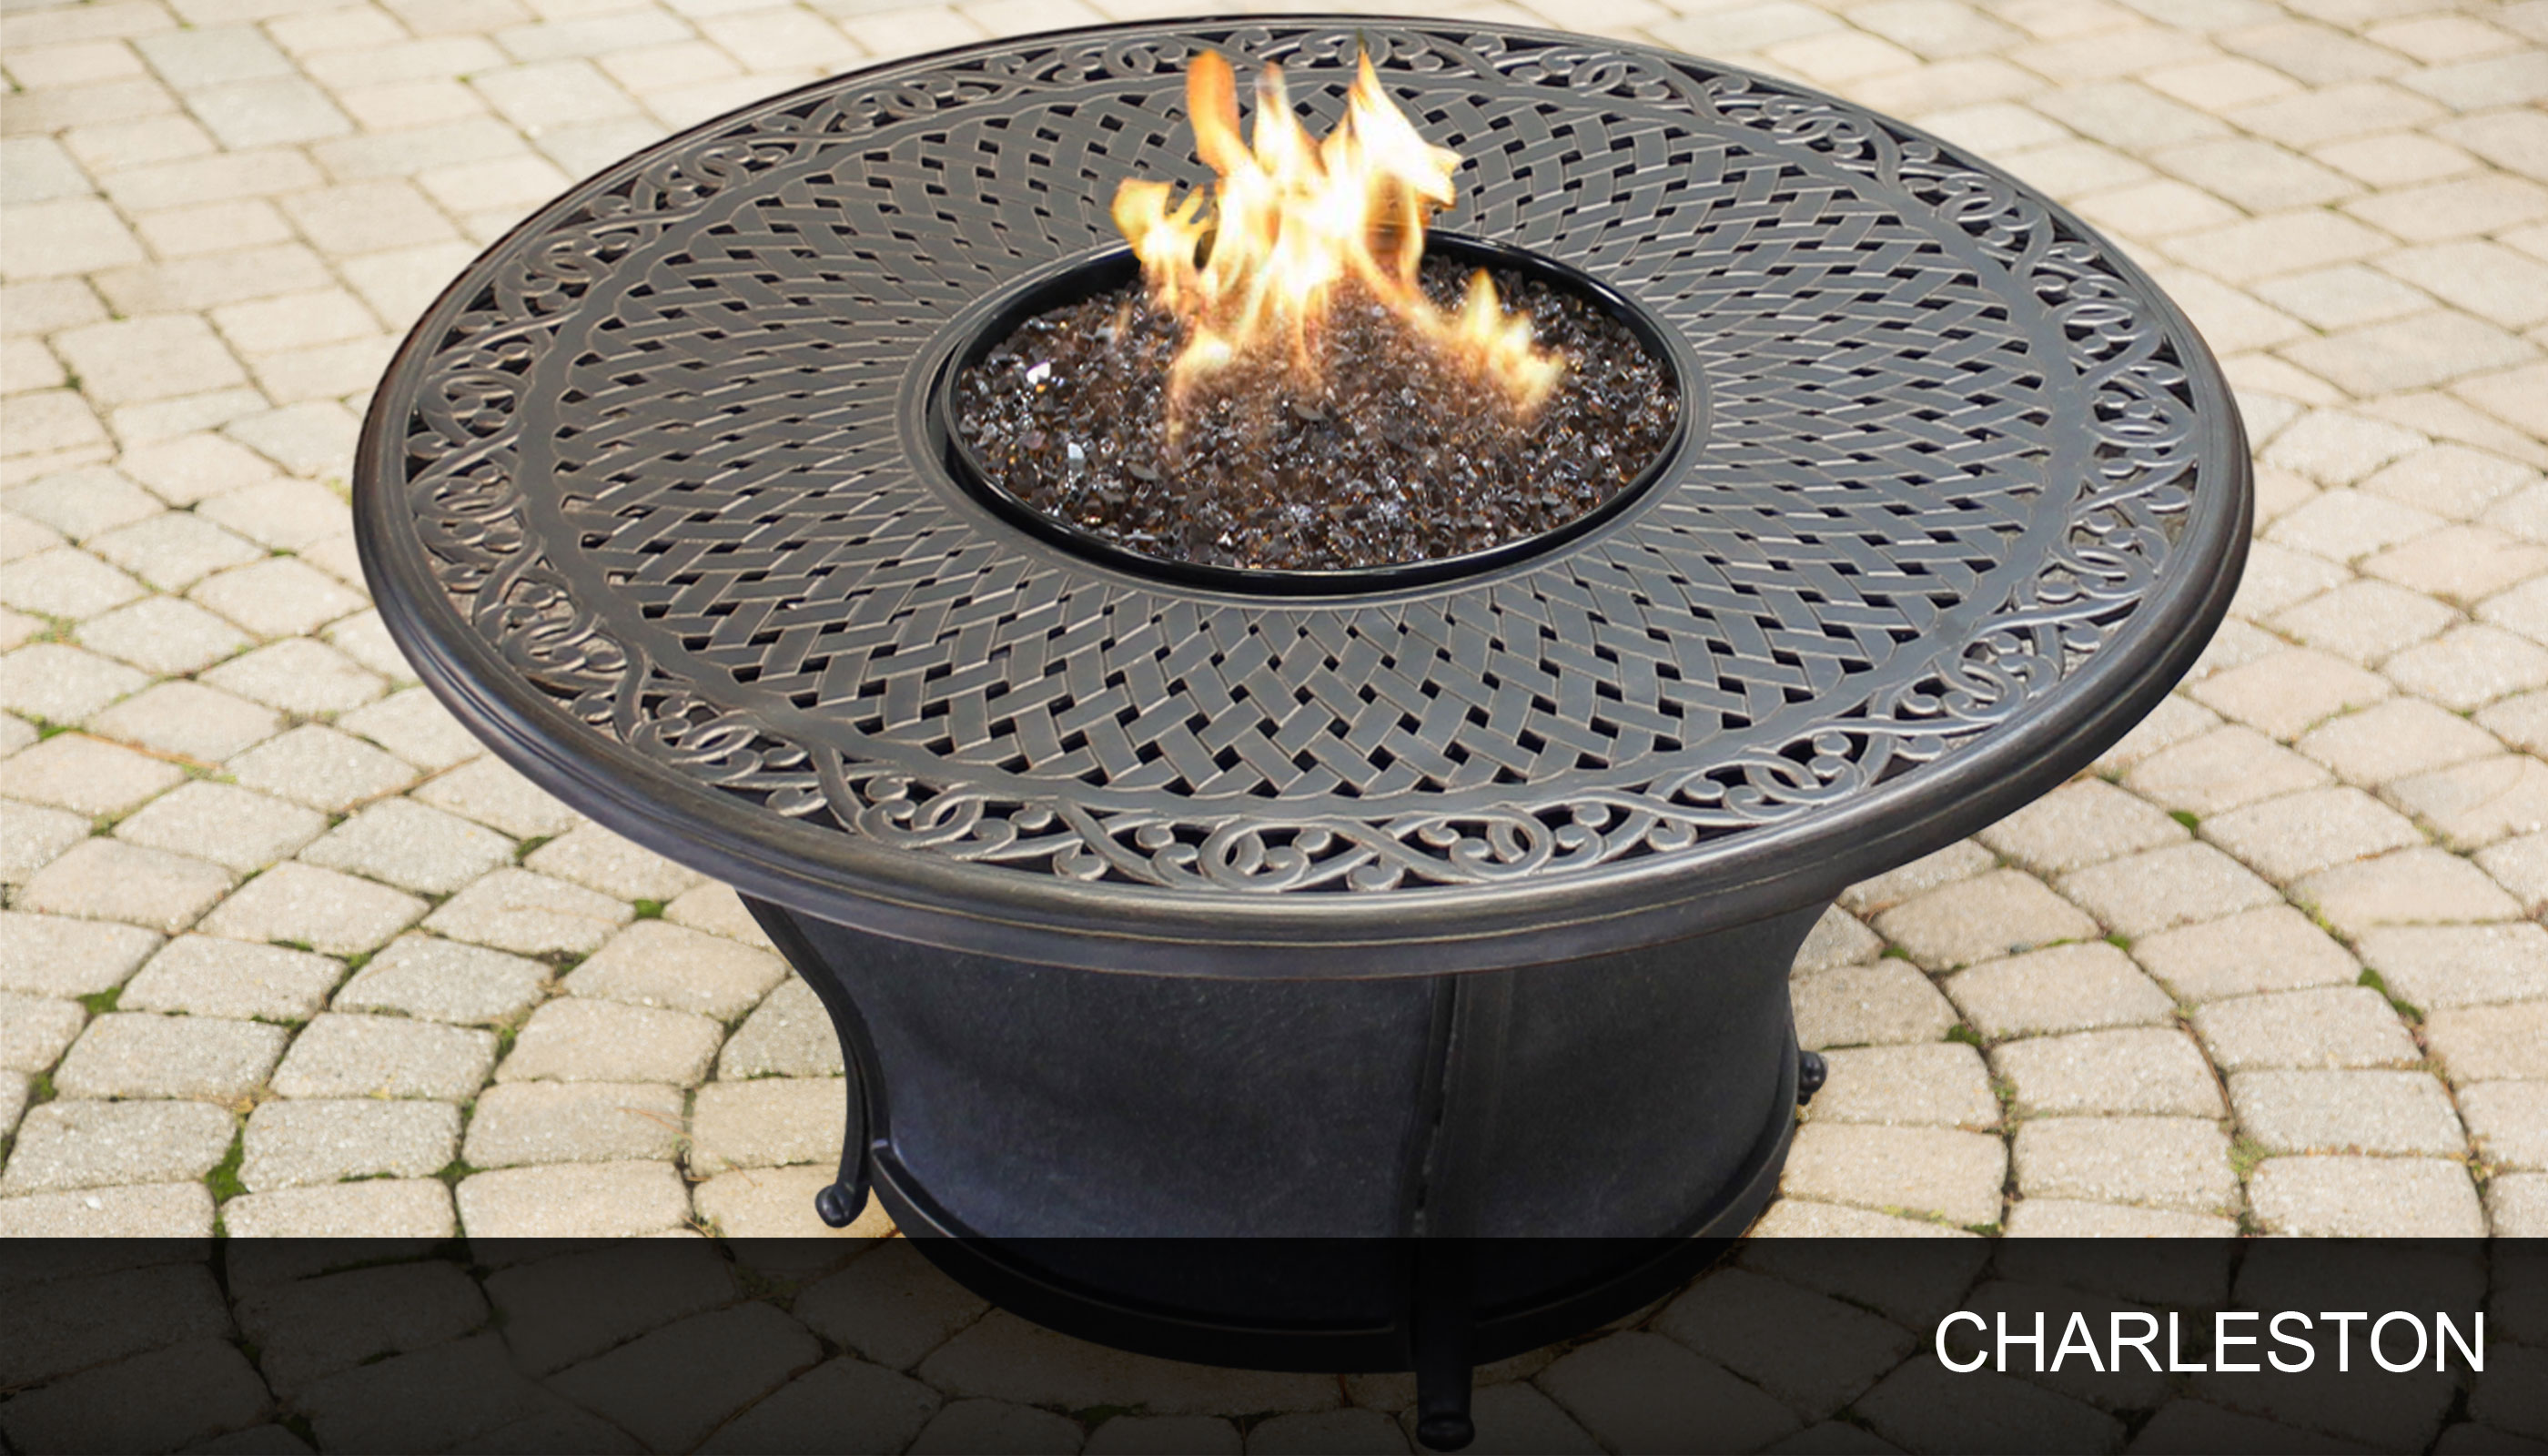 agio charleston fire pit round gas fire pit table